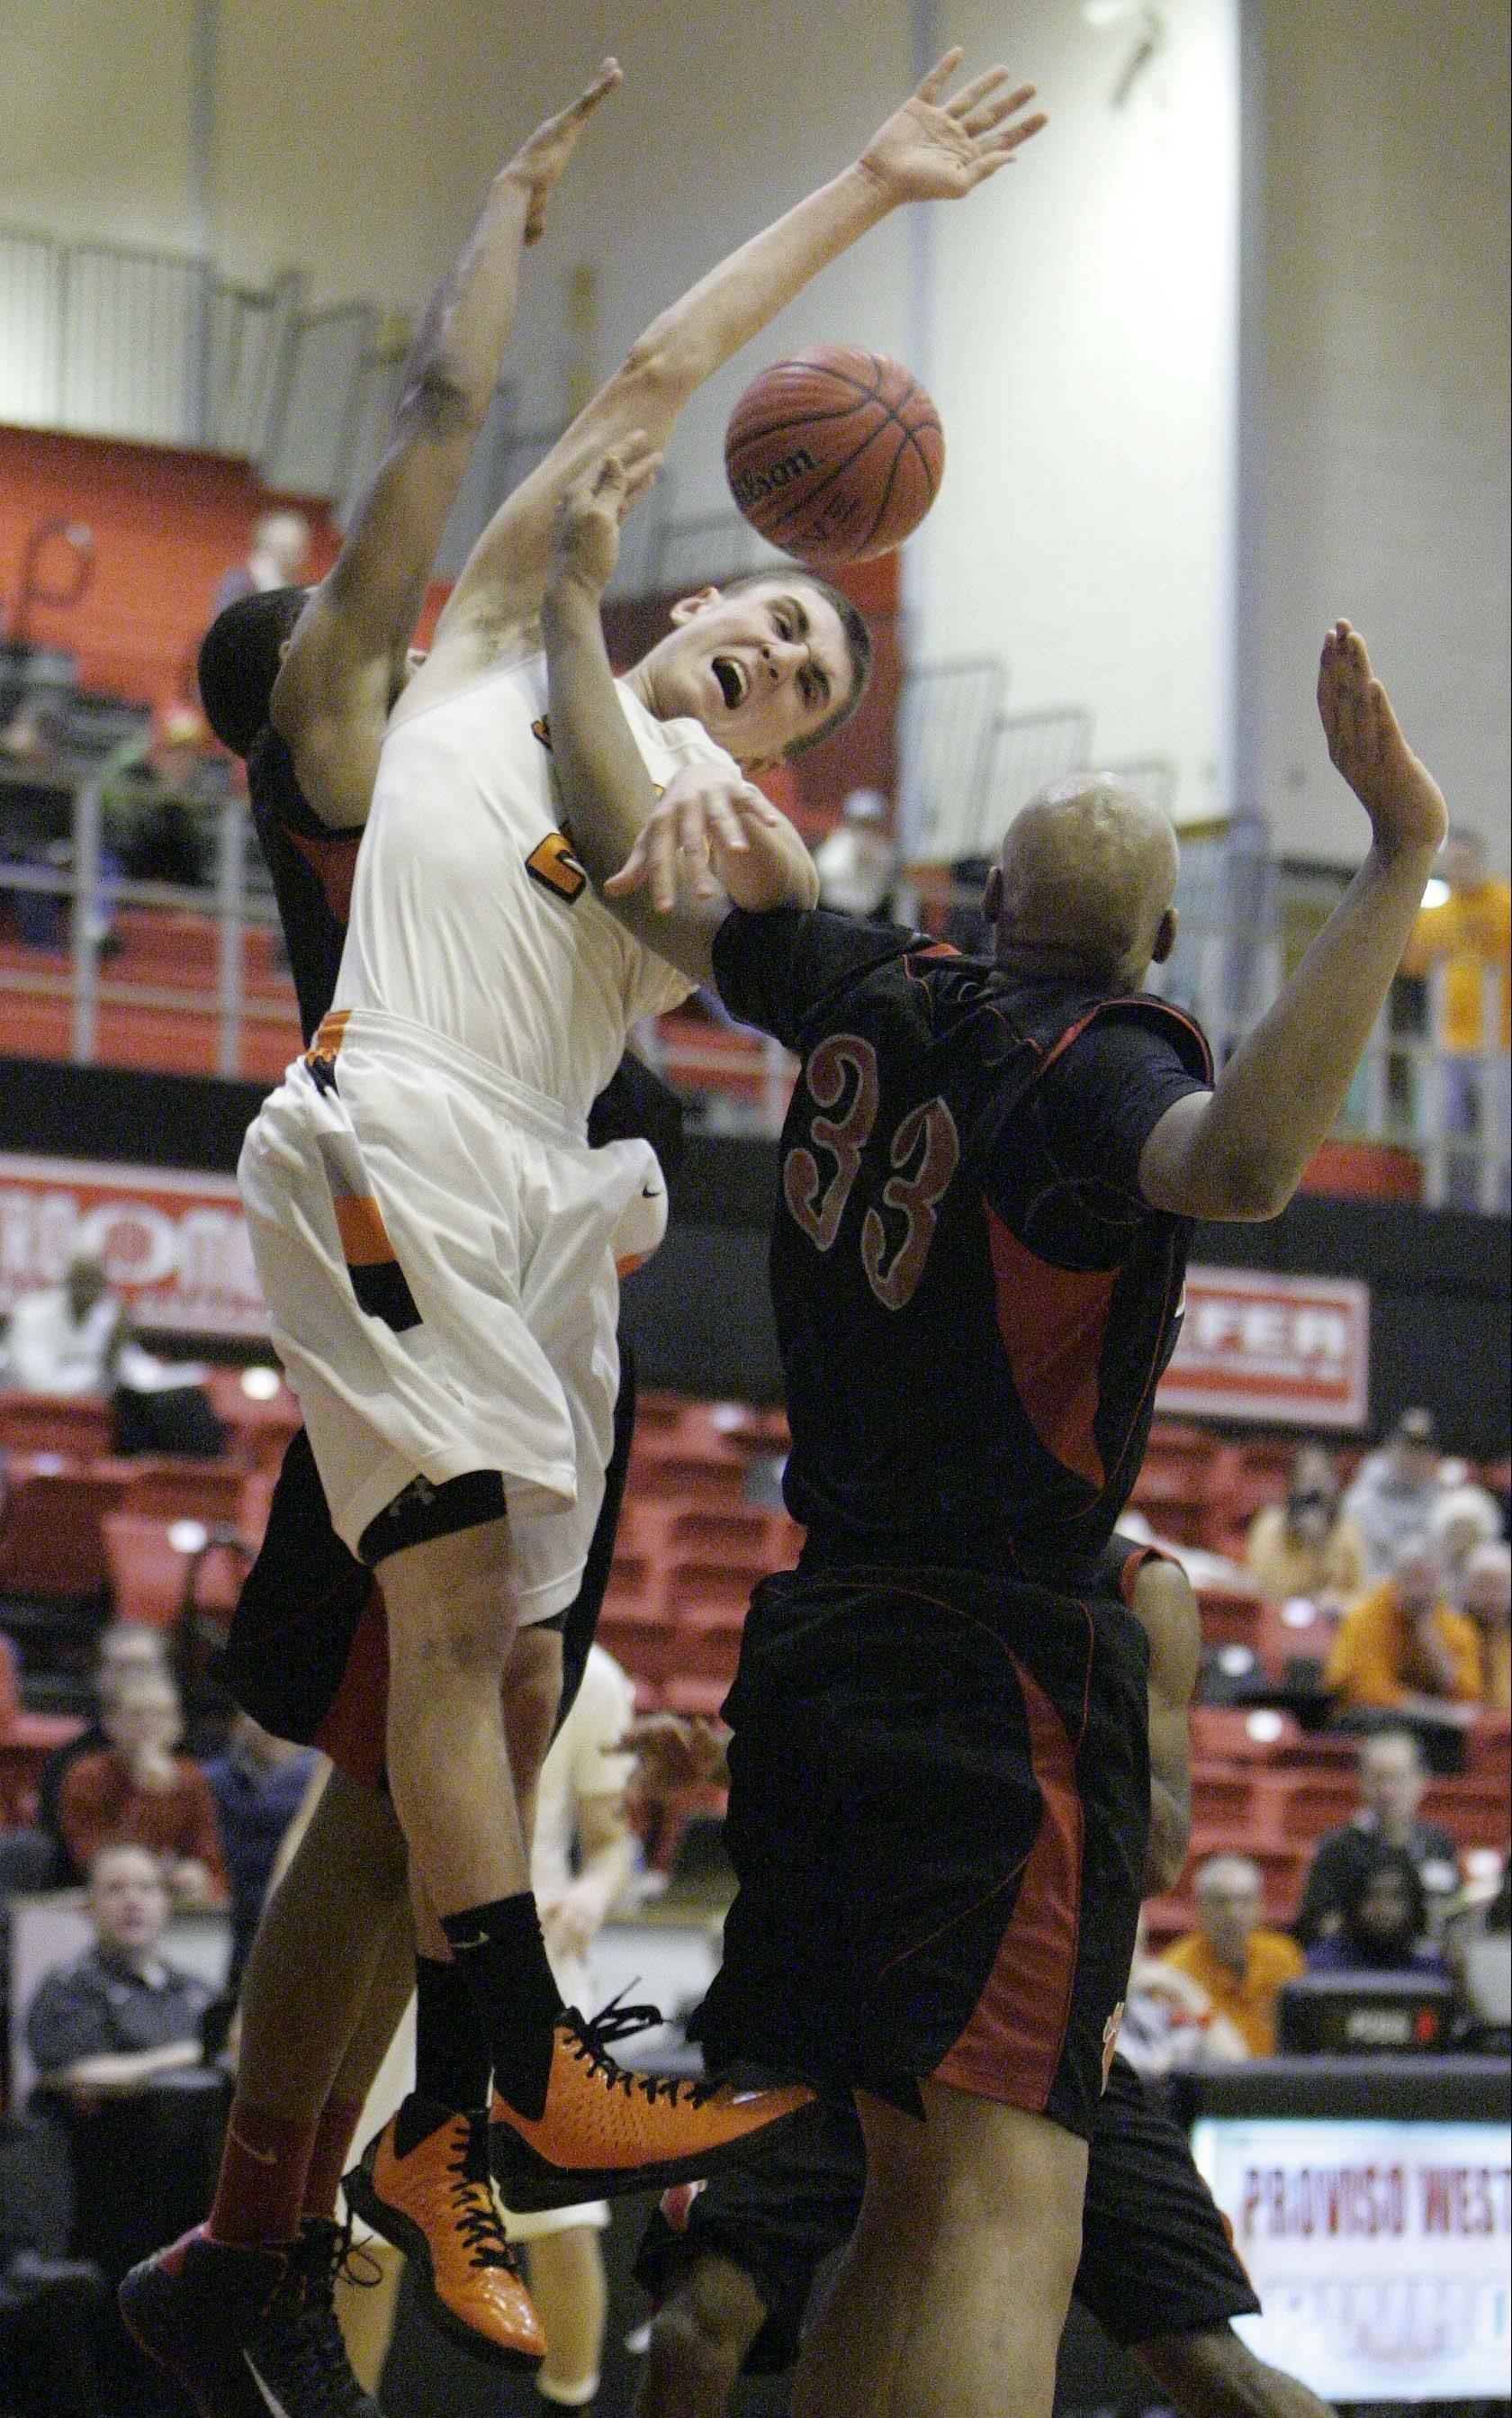 St. Charles East's Dom Adduci is fouled by Von Steuben's Malachi Matias, 33, Wednesday at the Proviso West Holiday Tournament in Hillside.